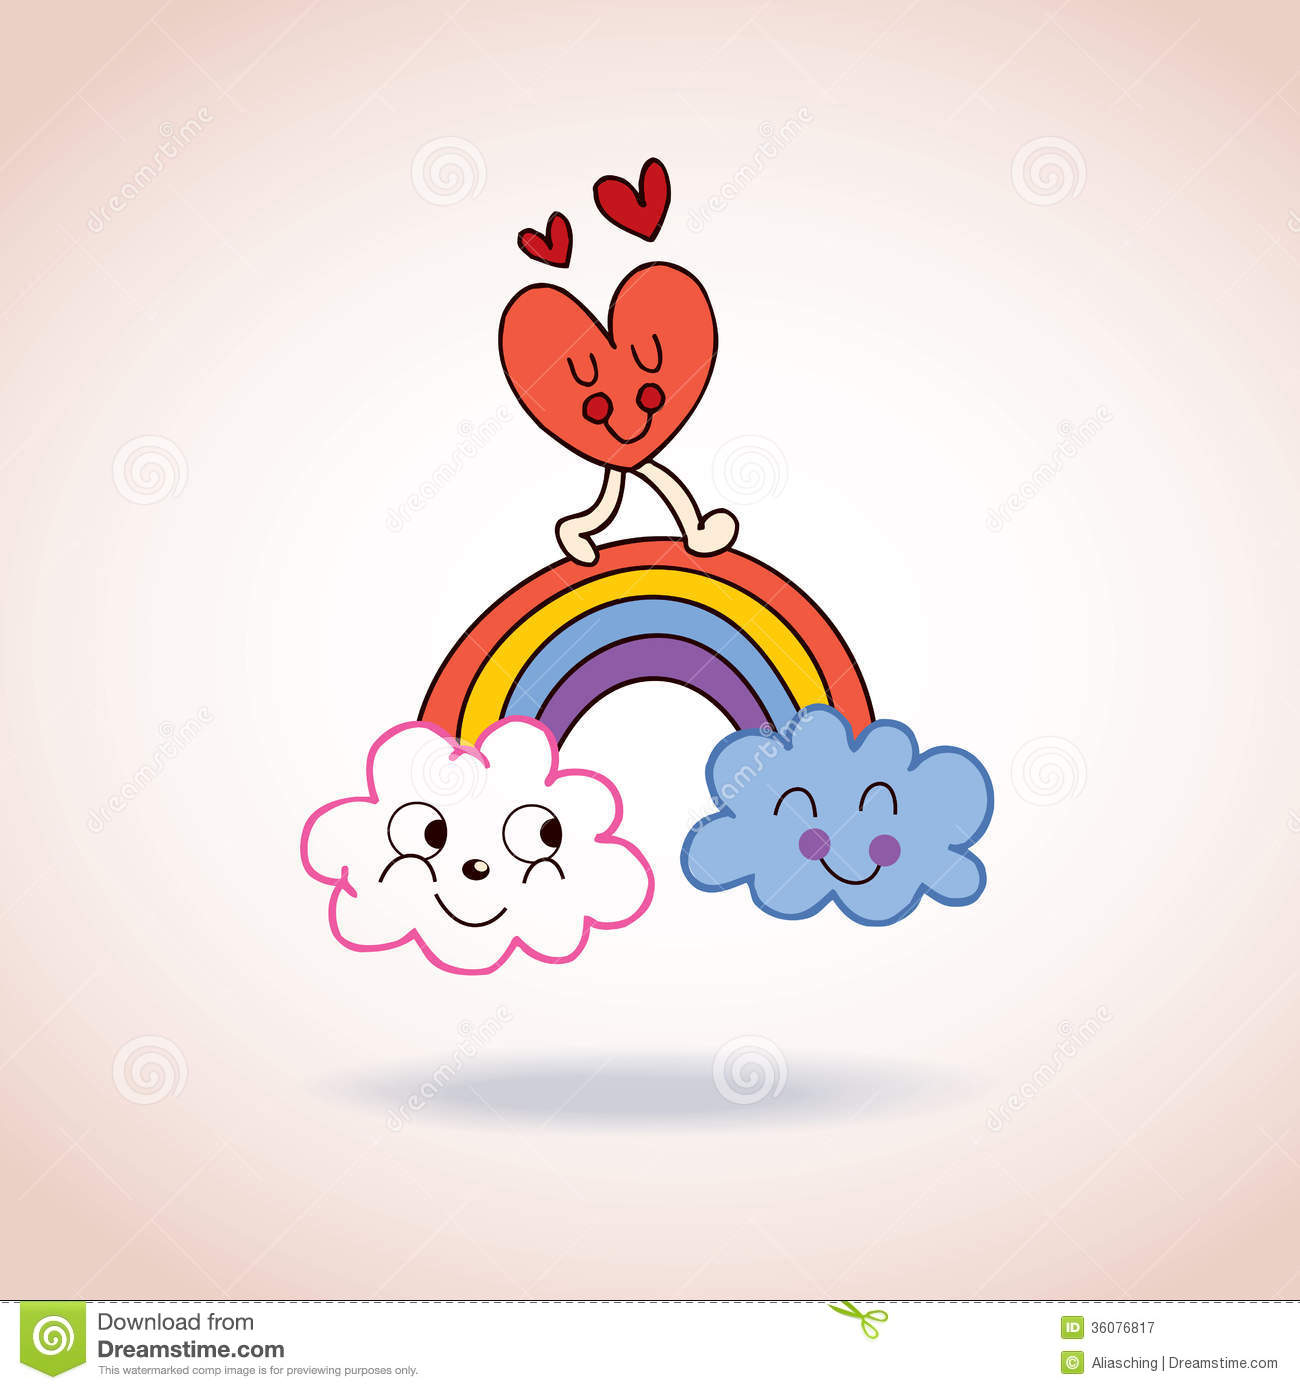 Wallpaper Cartoon Cute Couple Clouds Rainbow And Heart Cute Characters Illustration